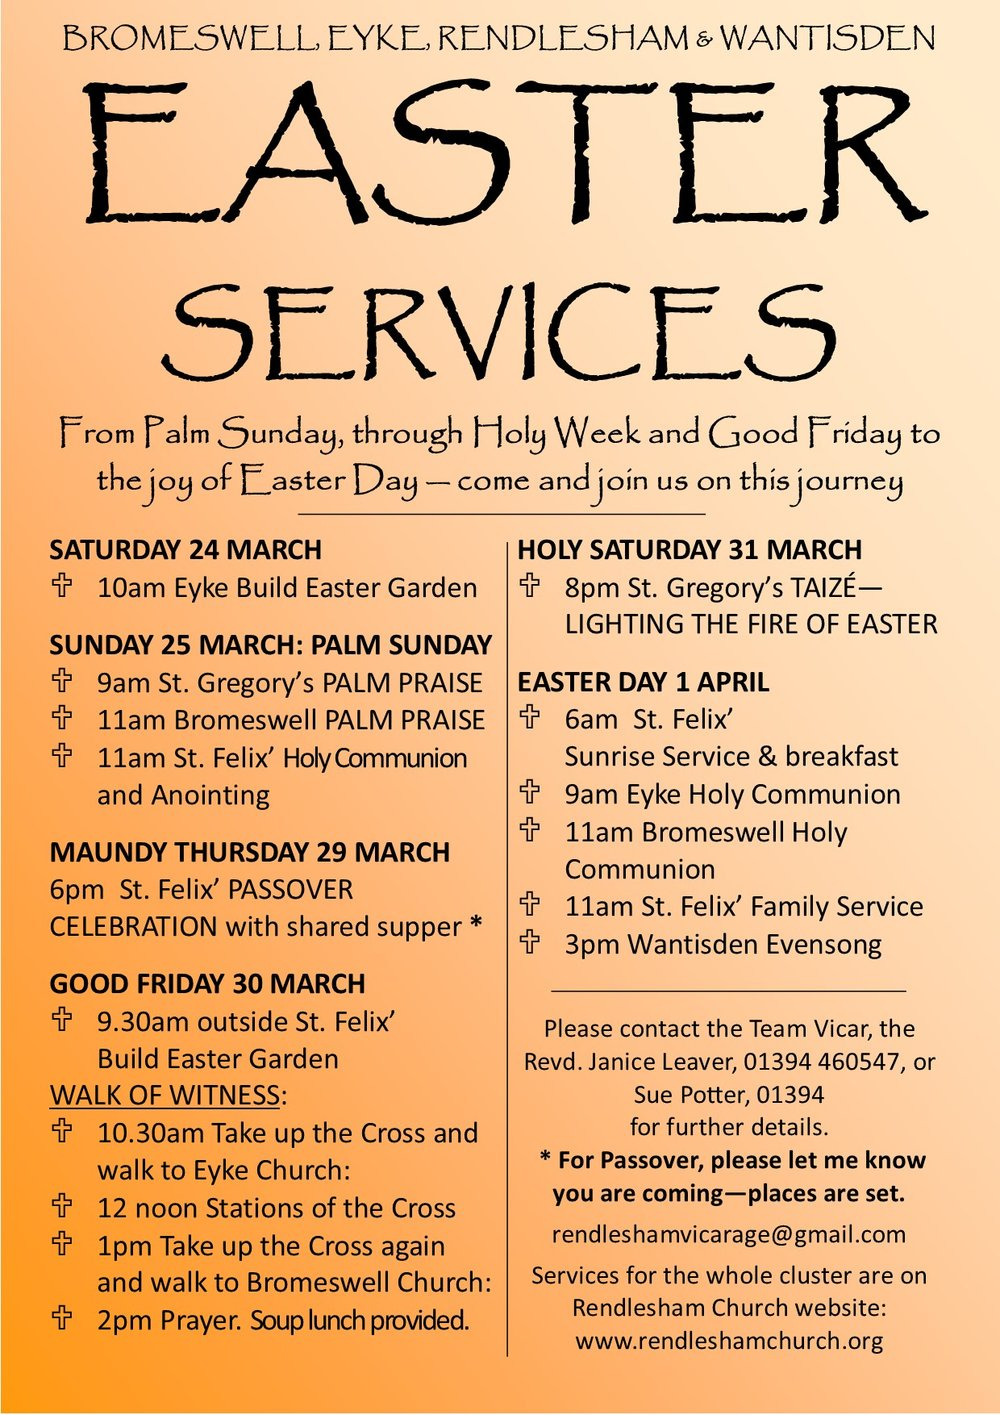 POSTER EASTER SERVICES 2018.jpg